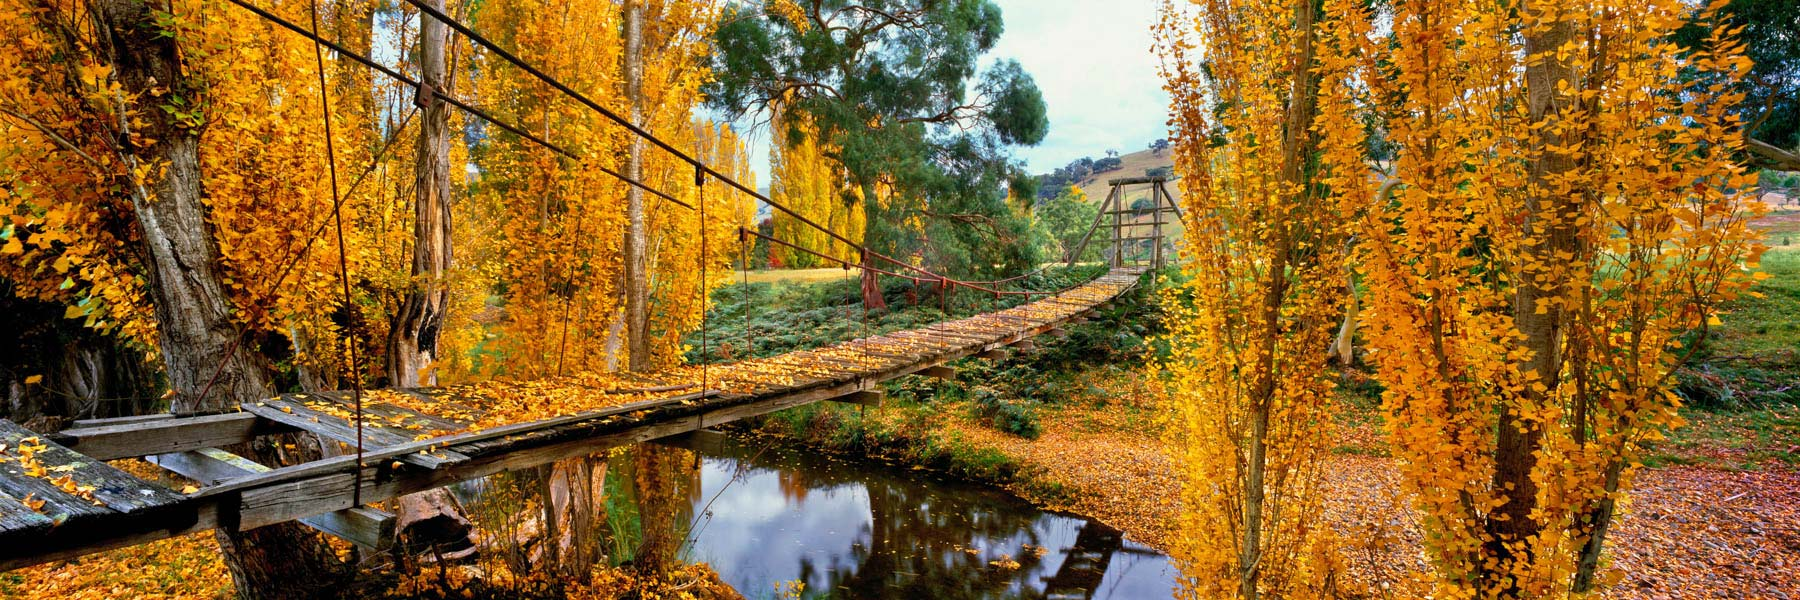 Trees with golden autumn leaves framing an old swing bridge across Swifts Creek, Victoria, Australia.